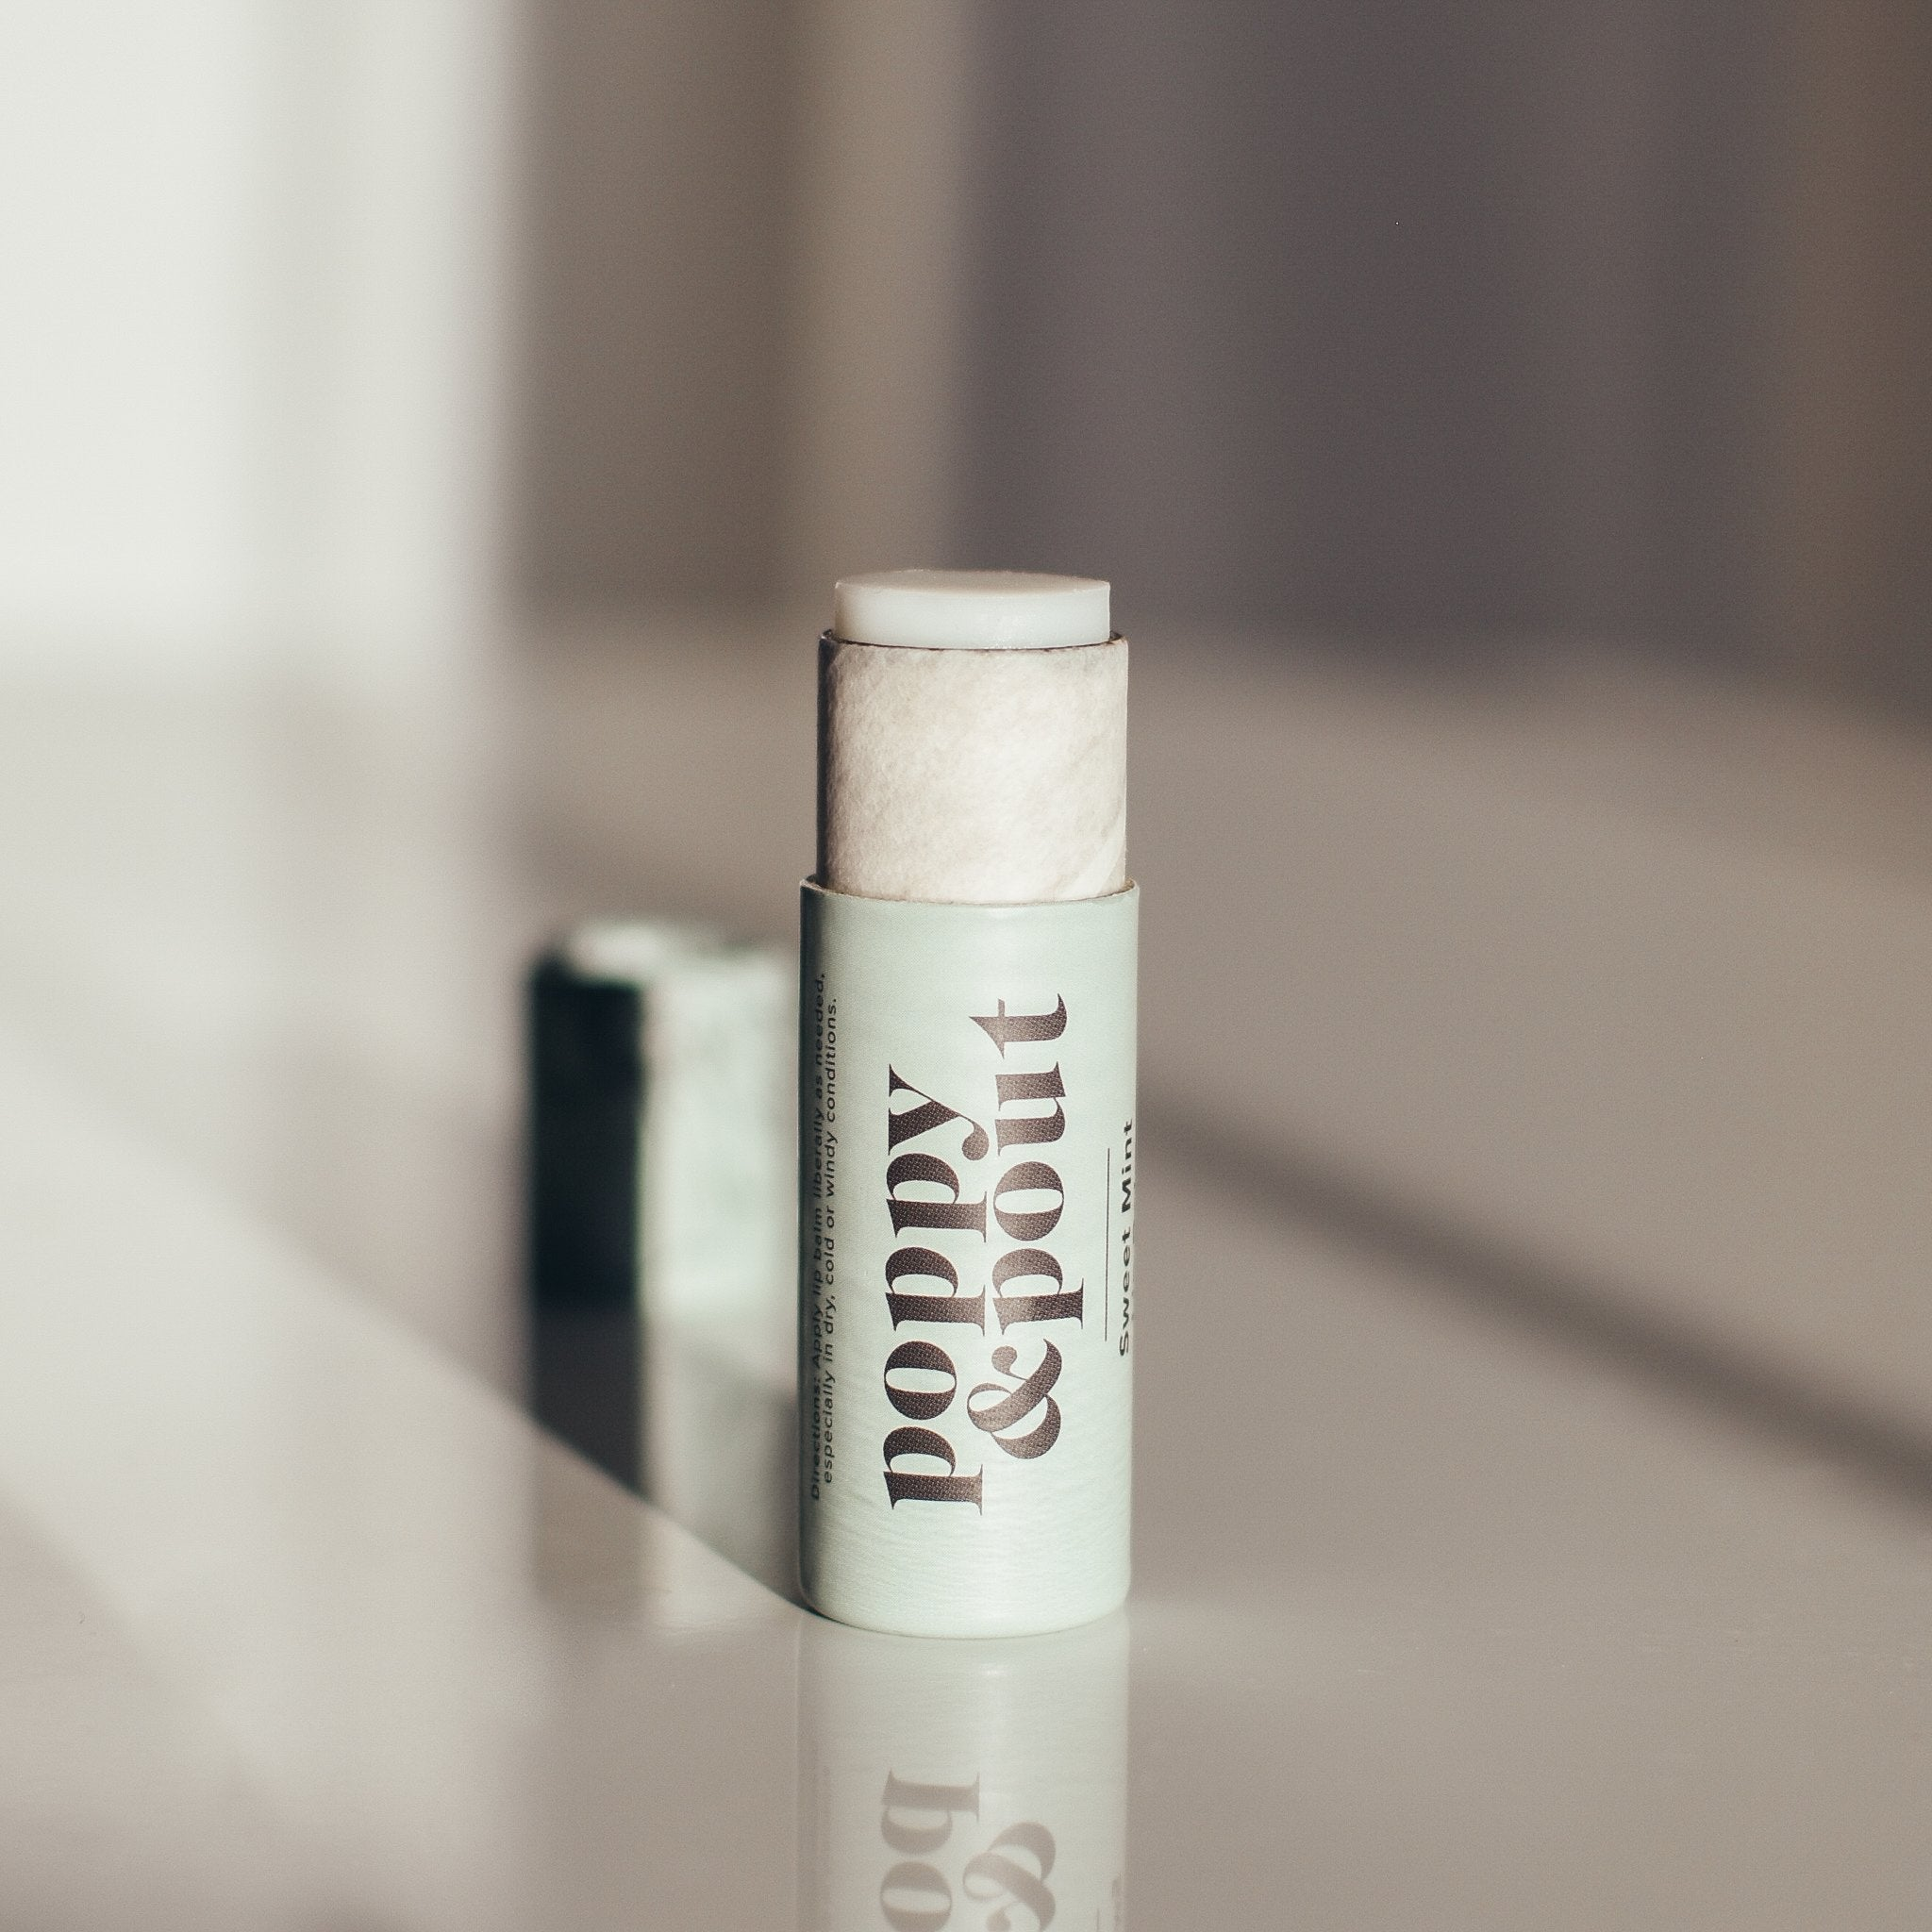 POPPY & POUT - SWEET MINT LIP BALM